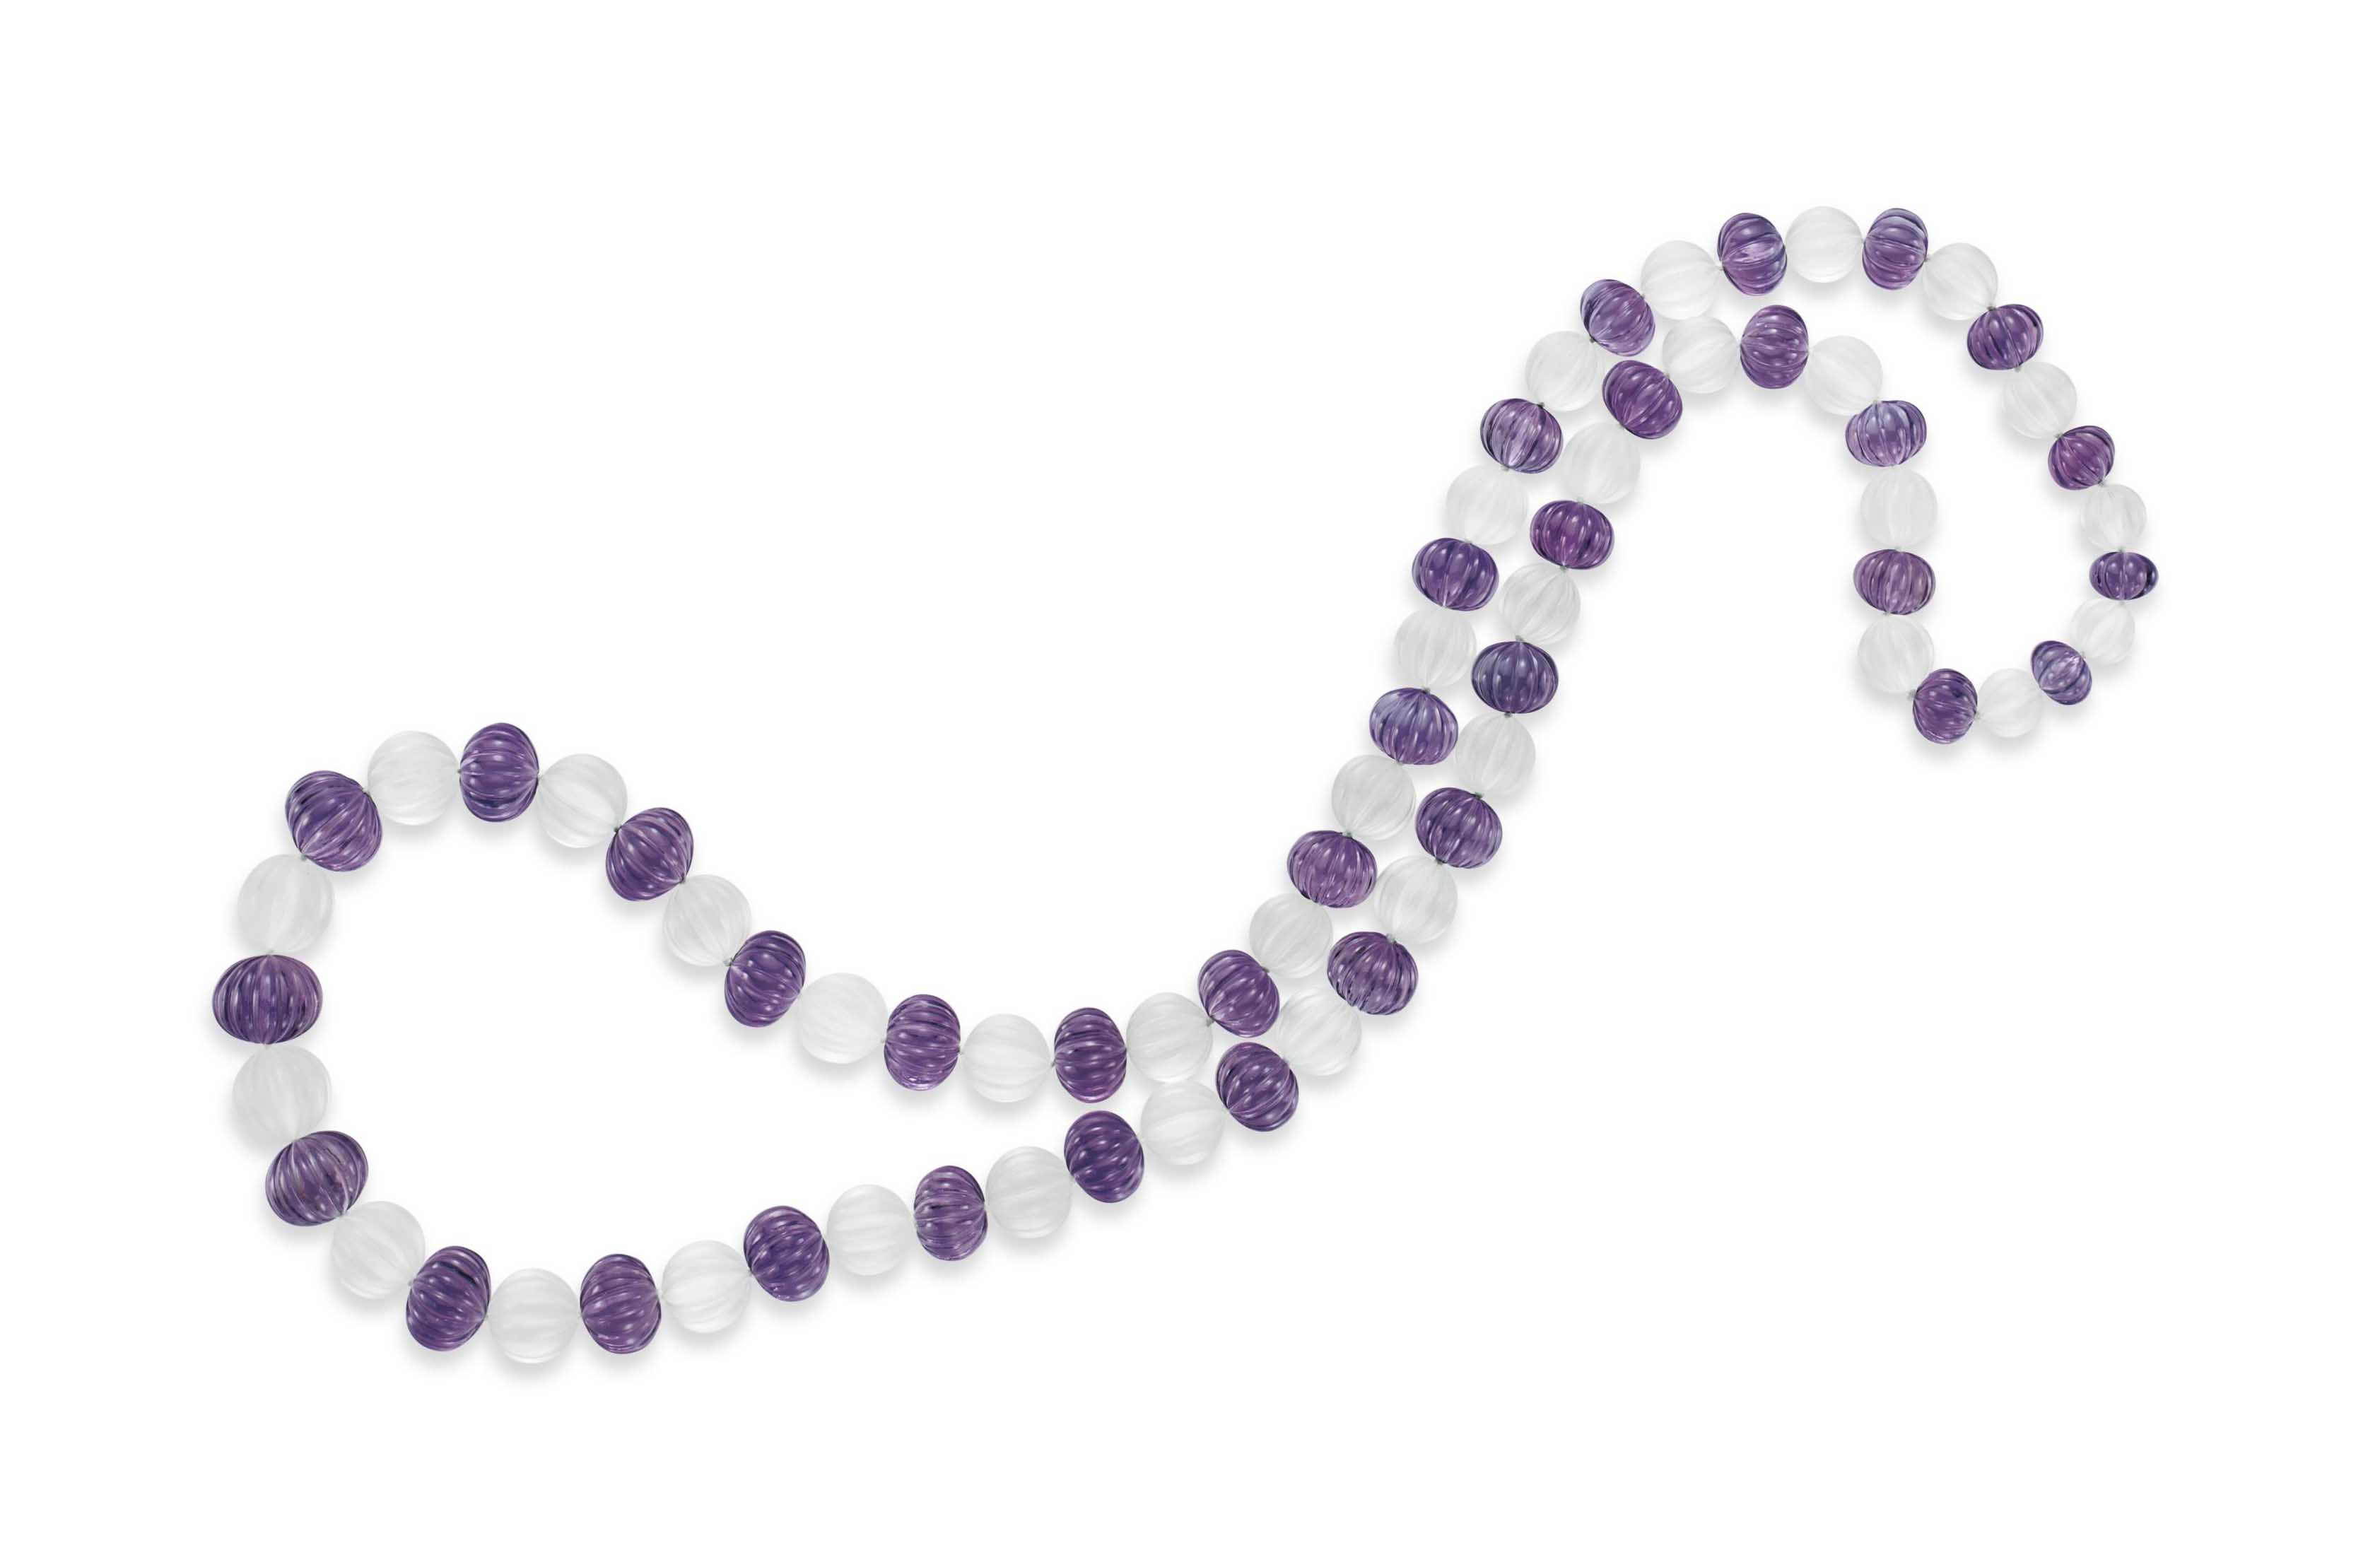 AN AMETHYST AND FROSTED ROCK CRYSTAL BEAD NECKLACE